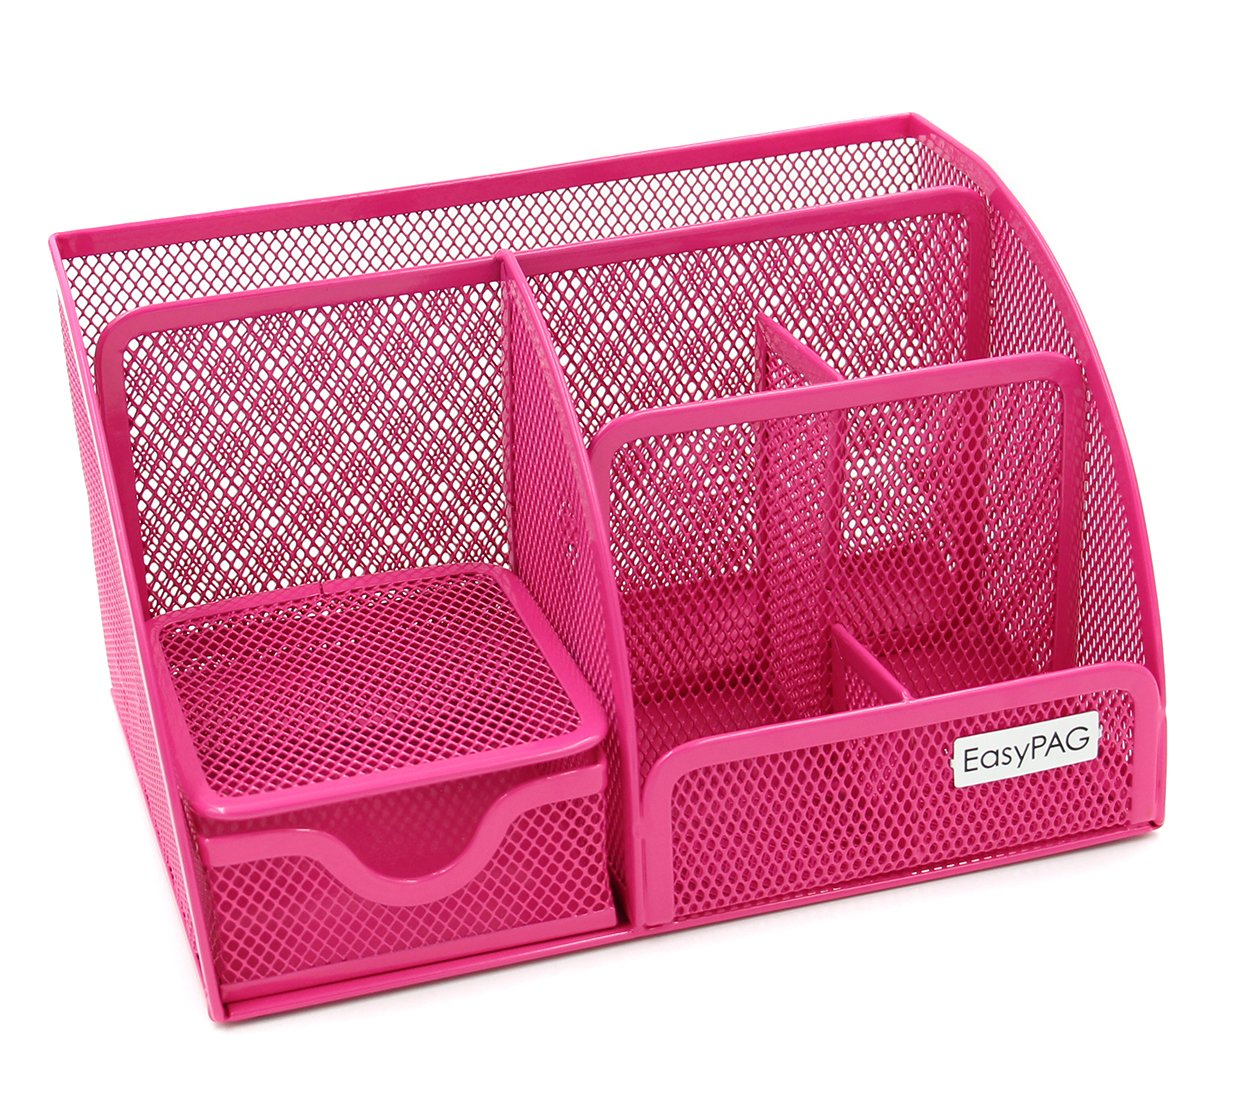 EasyPAG Mesh Office Desk Organizer 6 Compartments with Drawer,Pink by EasyPAG